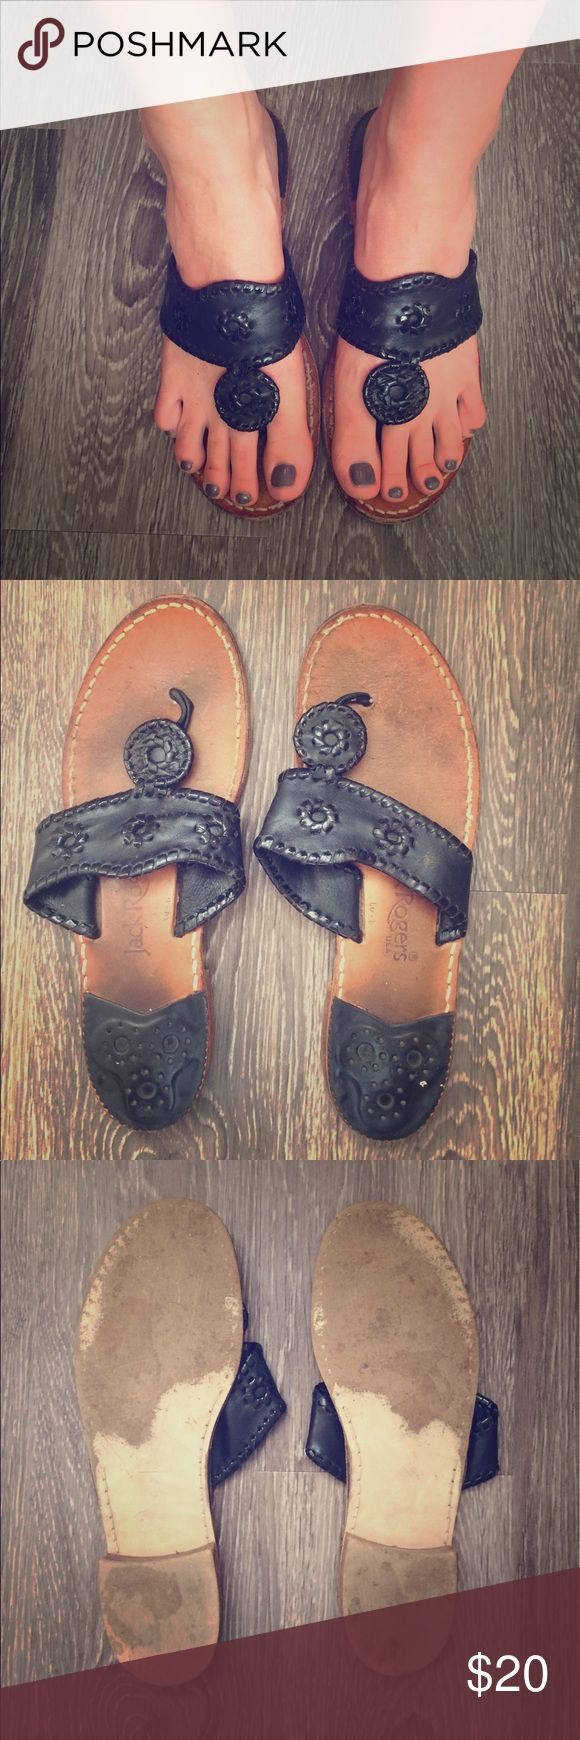 Jack Rodgers Black Sandals Size 9.5 Jack Rodger sandals in black. The dash next to the 9 means it's a half size. They do have signs of wear on the bottom. Great pair of sandals! Shoes Sandals